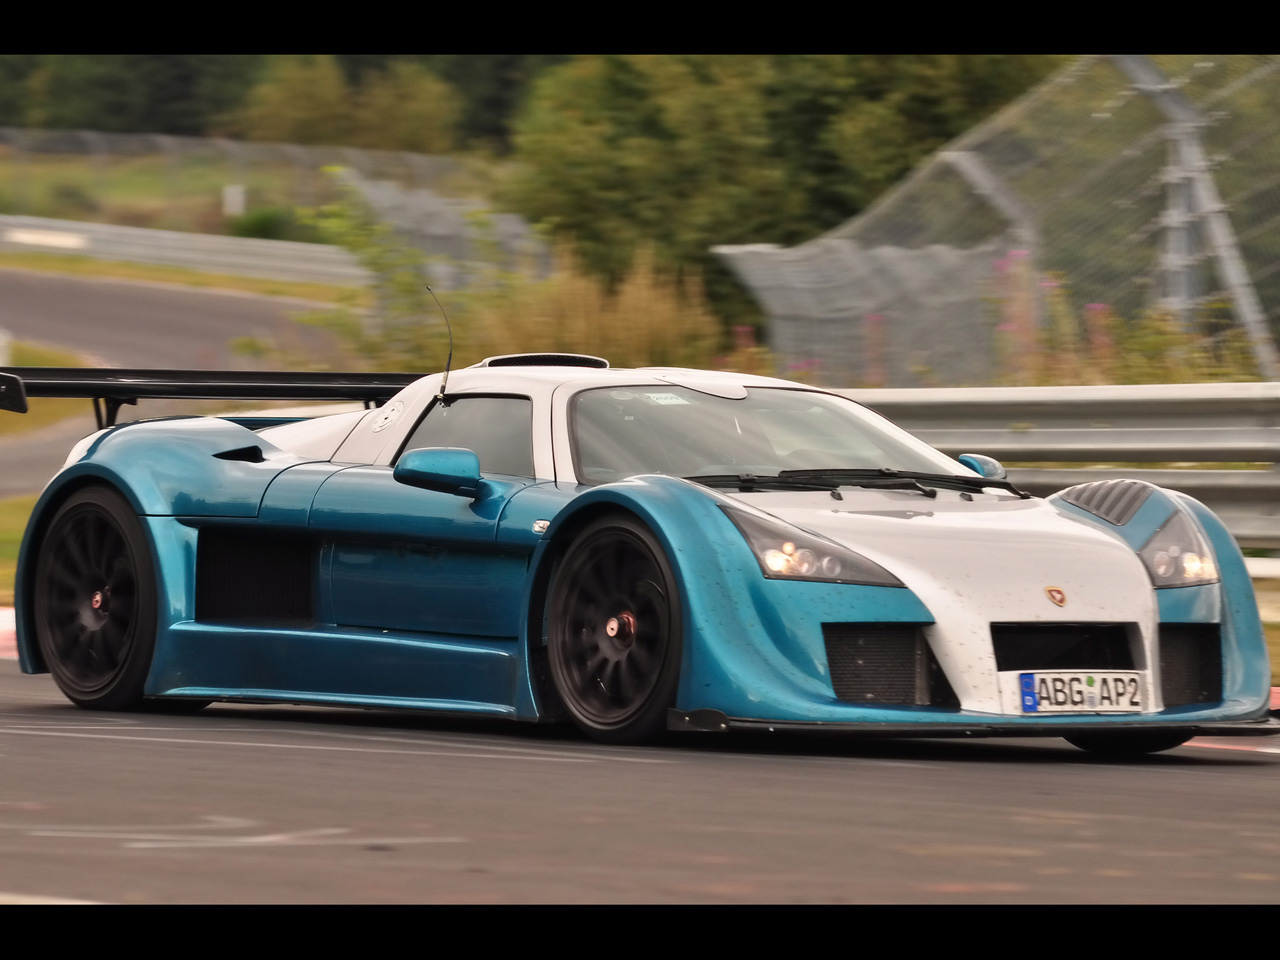 http://3.bp.blogspot.com/-j1kjPQEDeWM/TnkcHBFNyYI/AAAAAAAAEec/jLclYQ5WrJ8/s1600/2009-gumpert-apollo-sport-nurburgring-lap-record-front-and-side-speed-1280x960.jpg